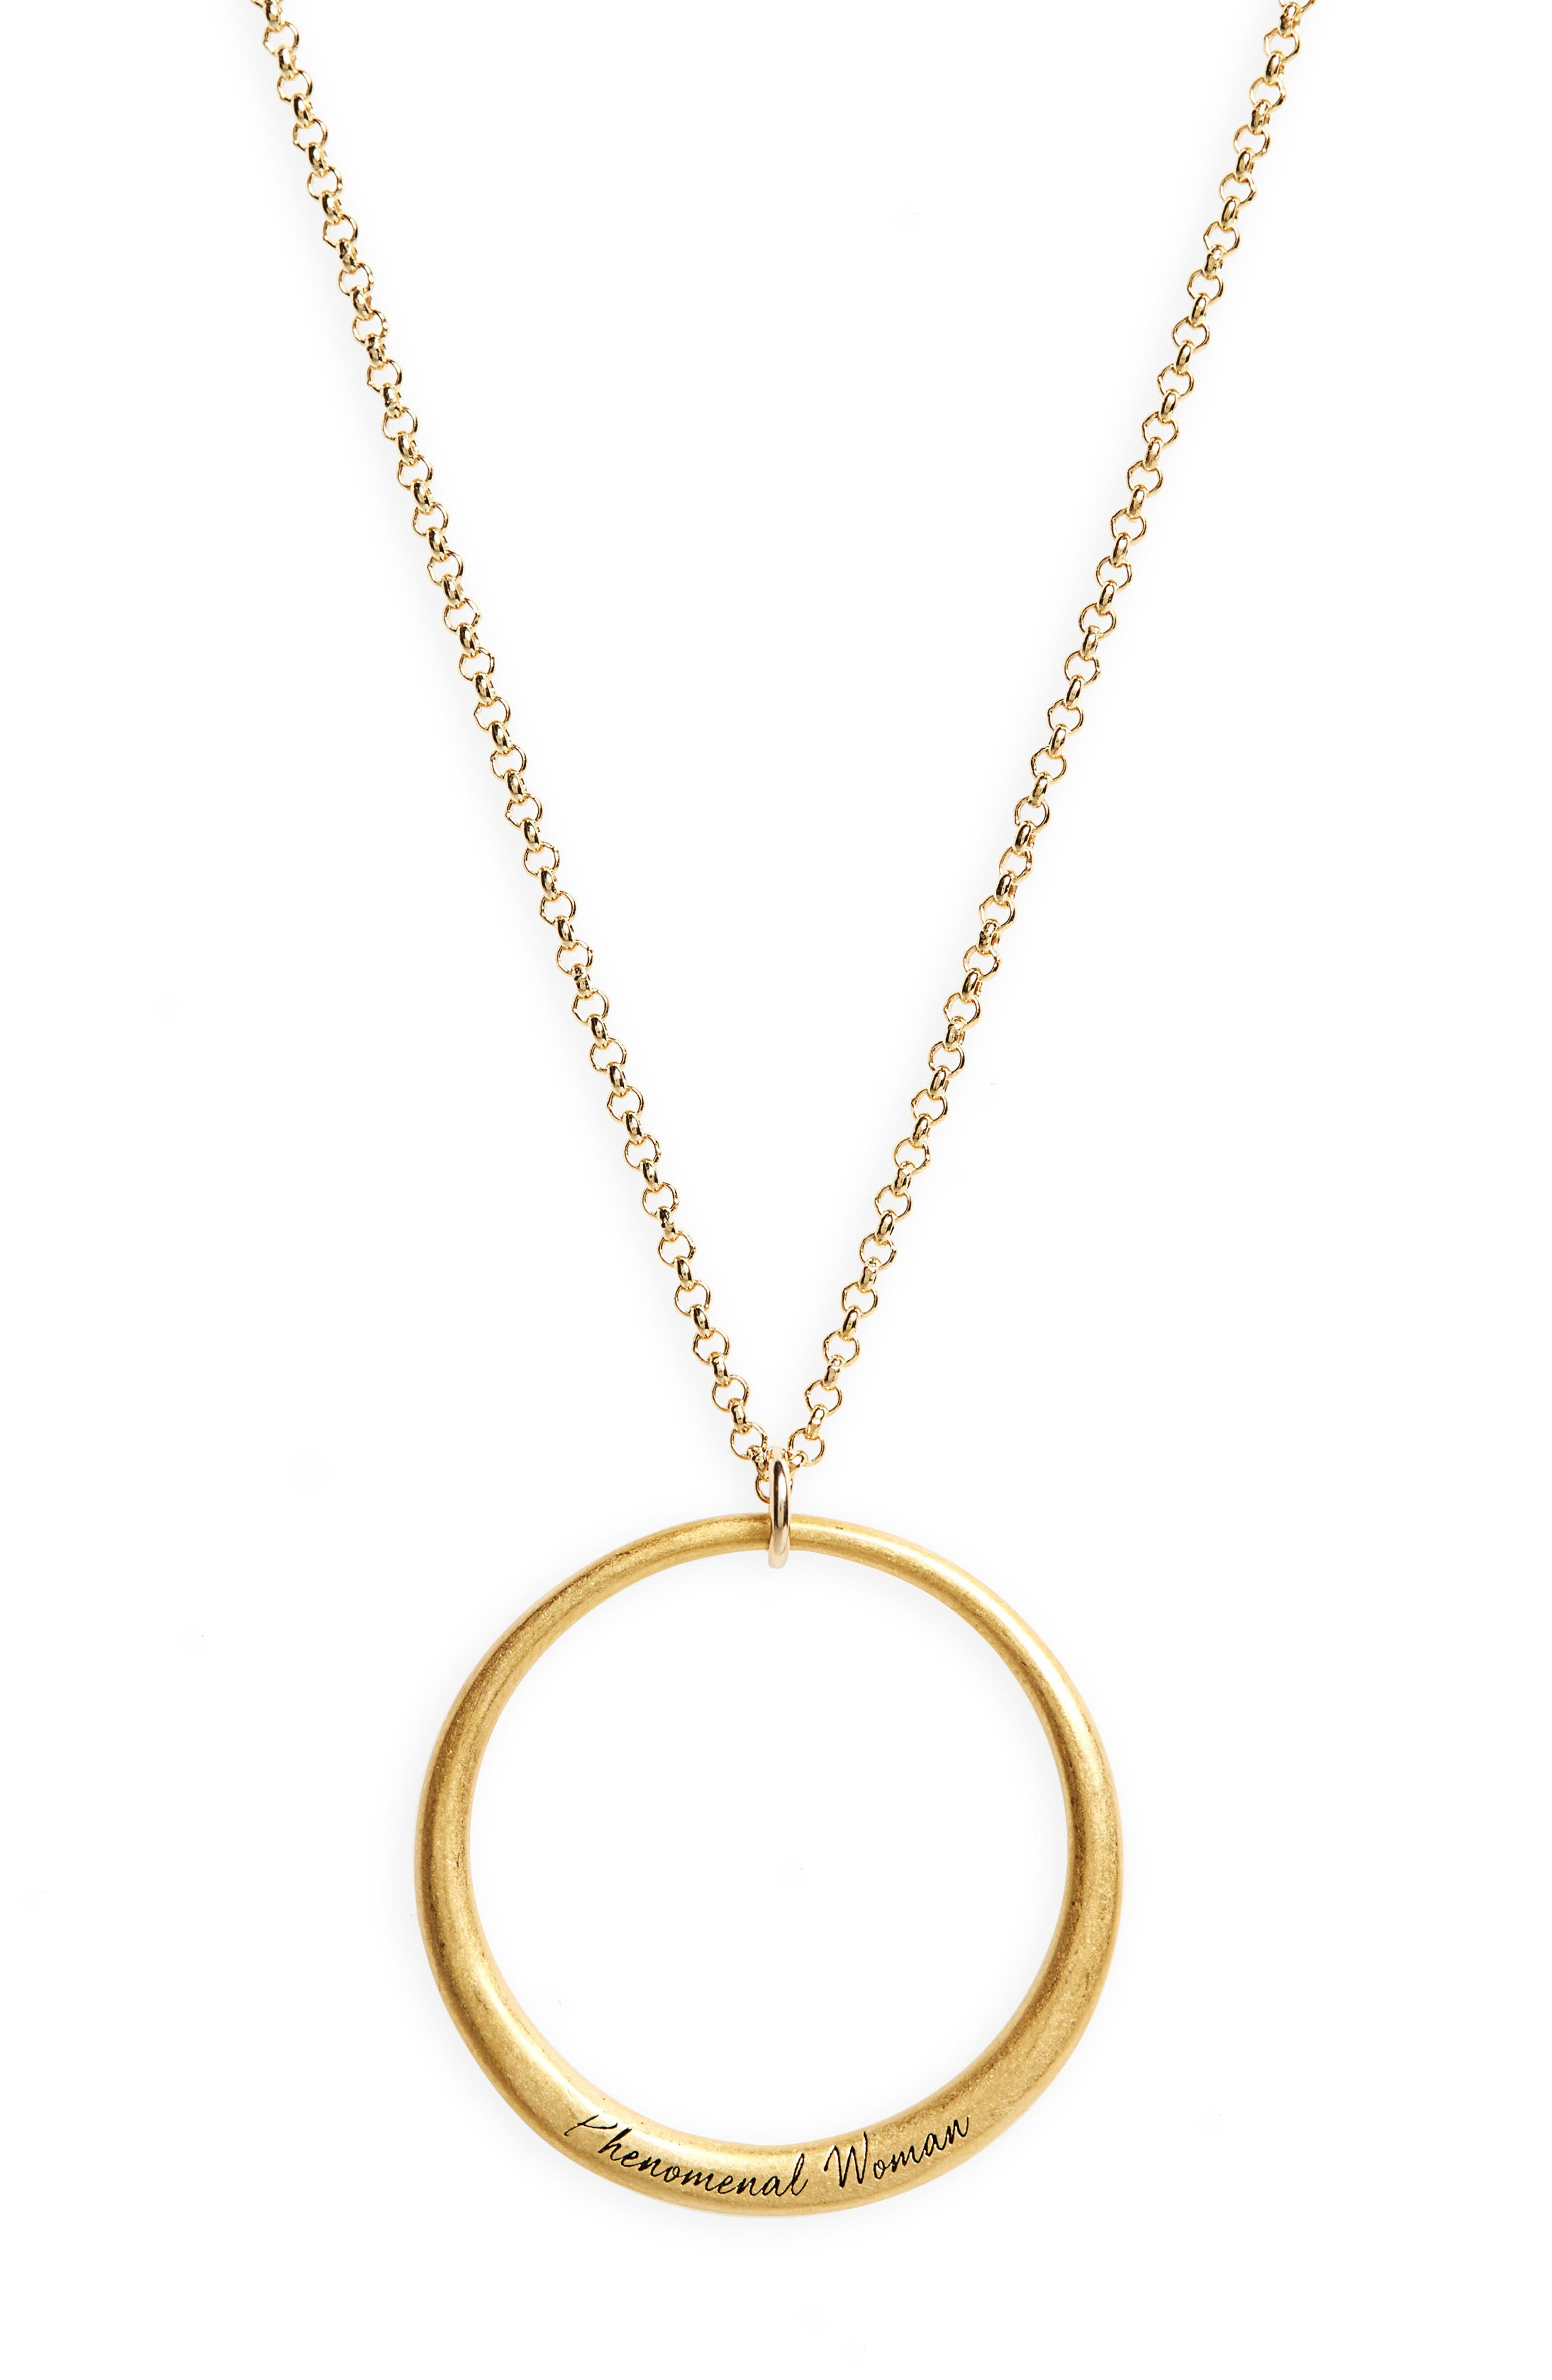 Legacy Collection - Phenomenal Women Open Circle Pendant Necklace,                             Alternate thumbnail 2, color,                             Gold